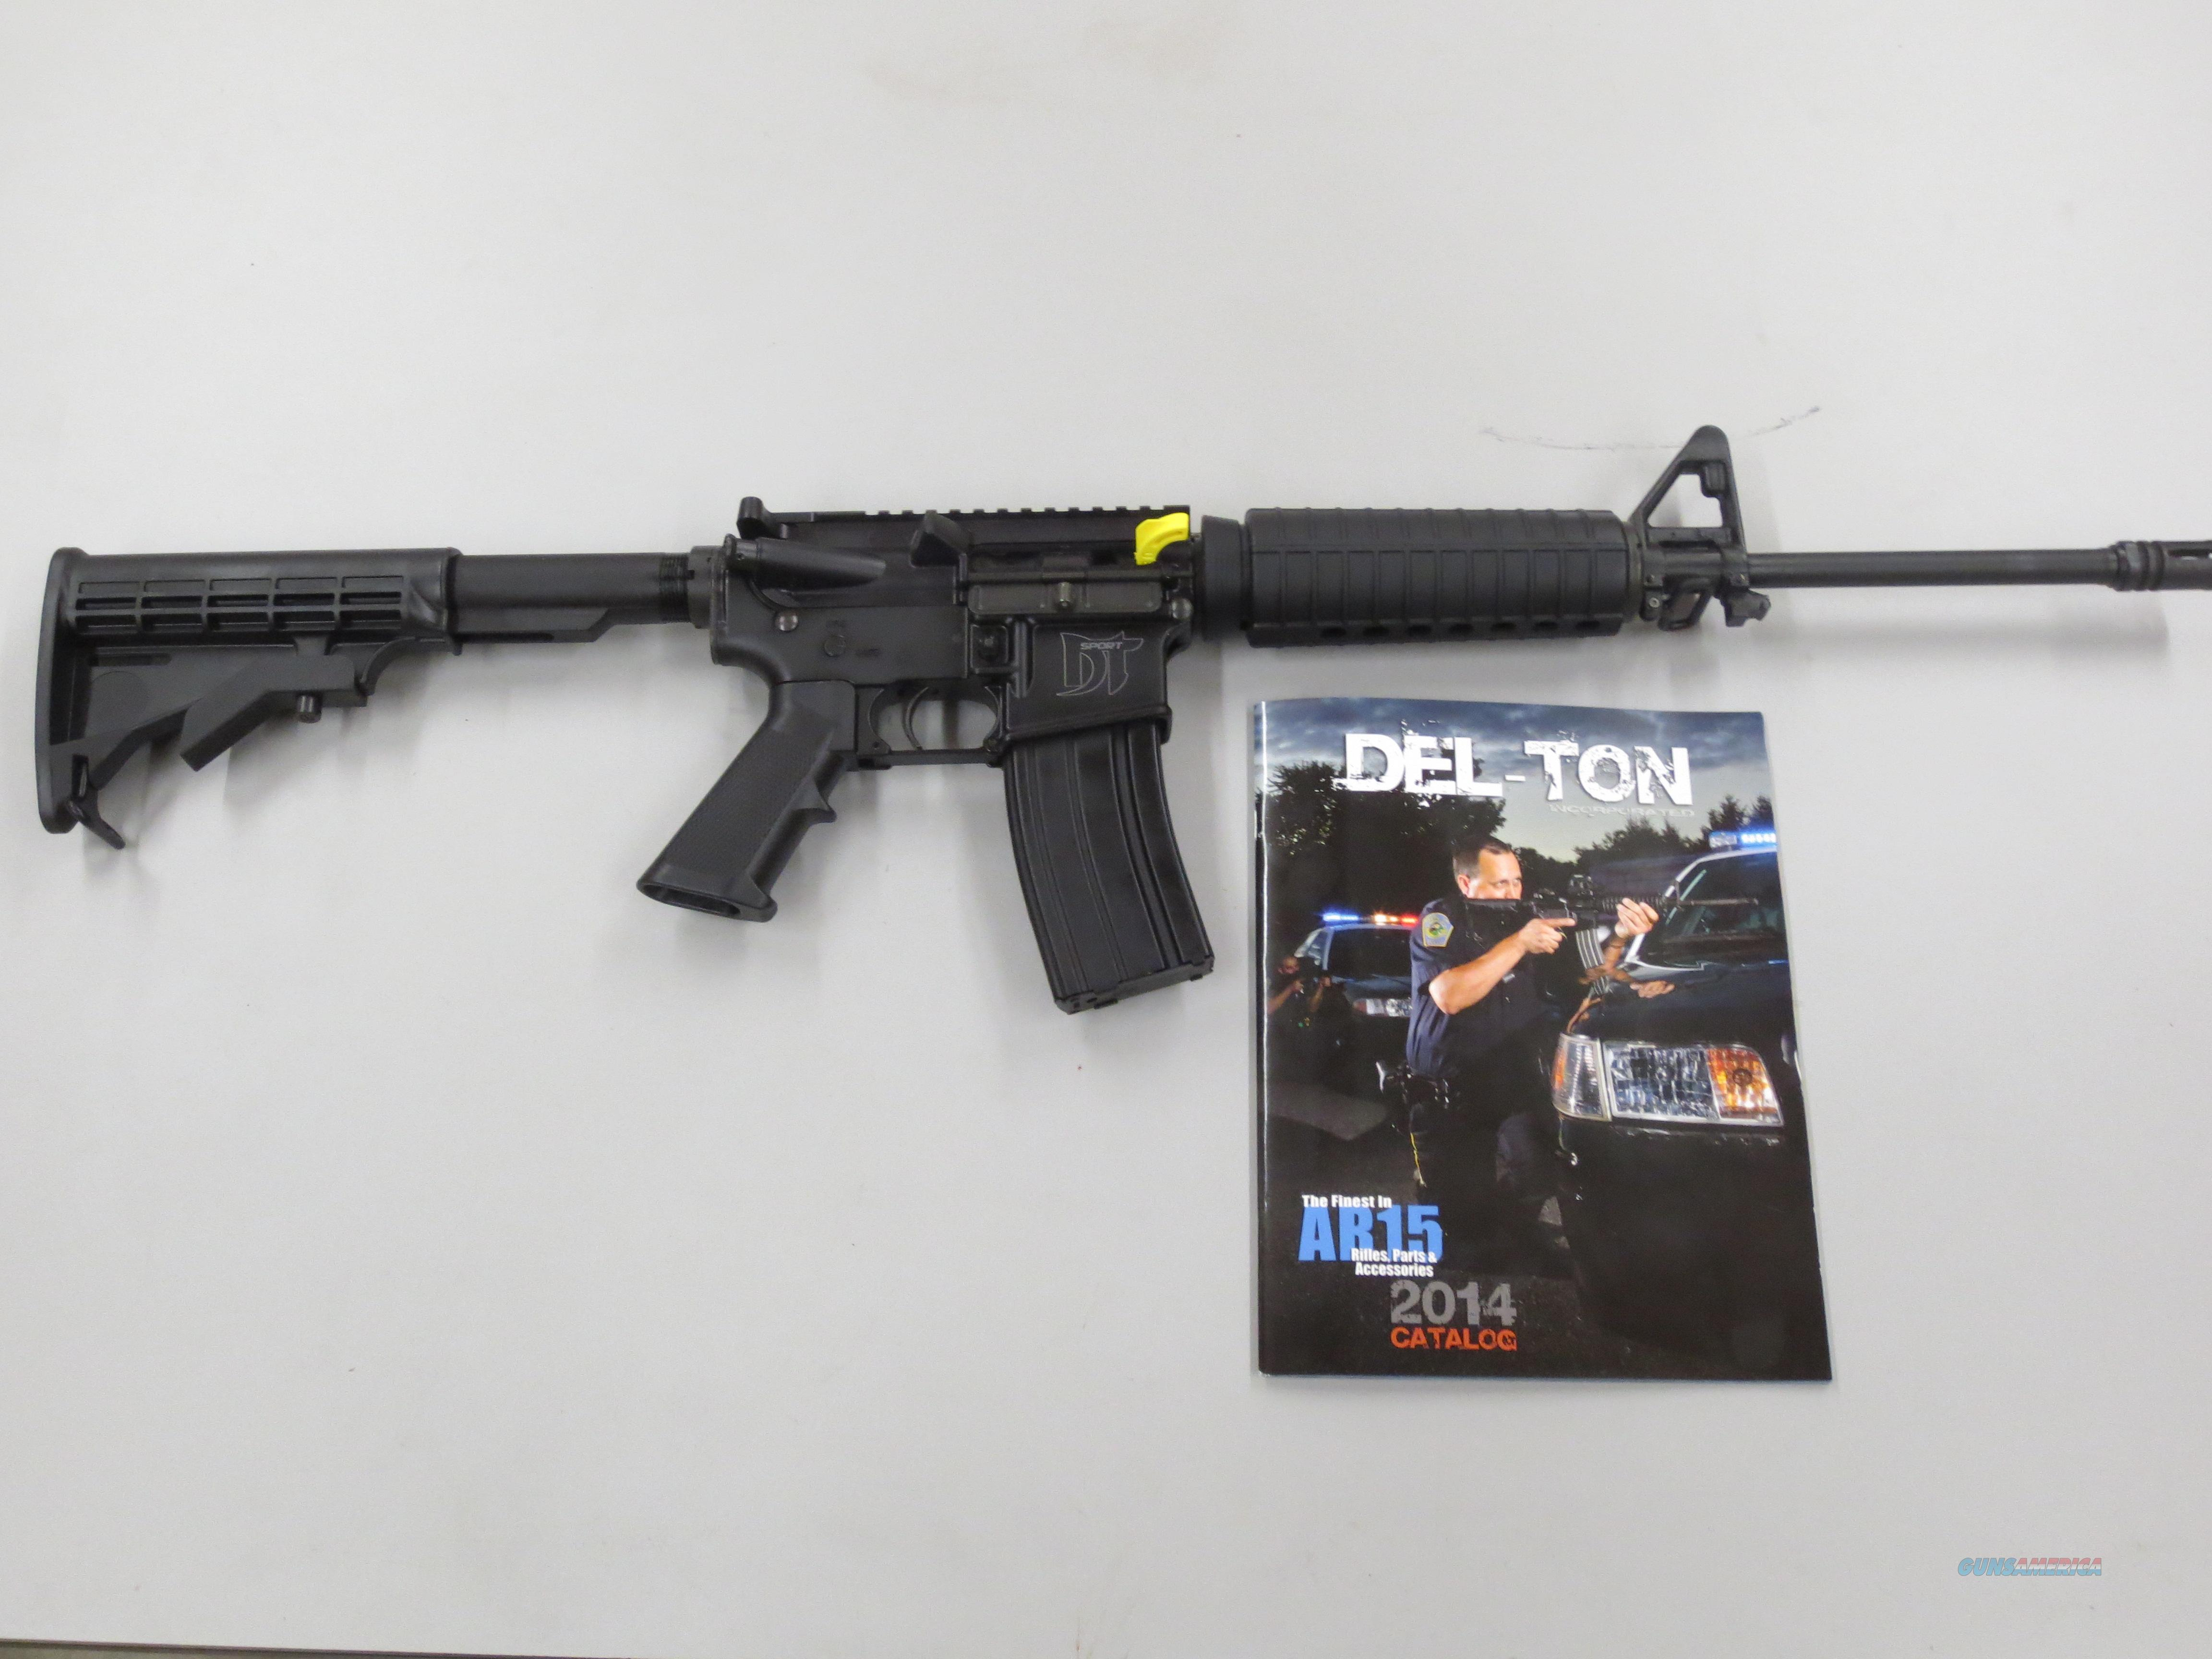 DEL-TON DT Sport  Guns > Rifles > AR-15 Rifles - Small Manufacturers > Complete Rifle